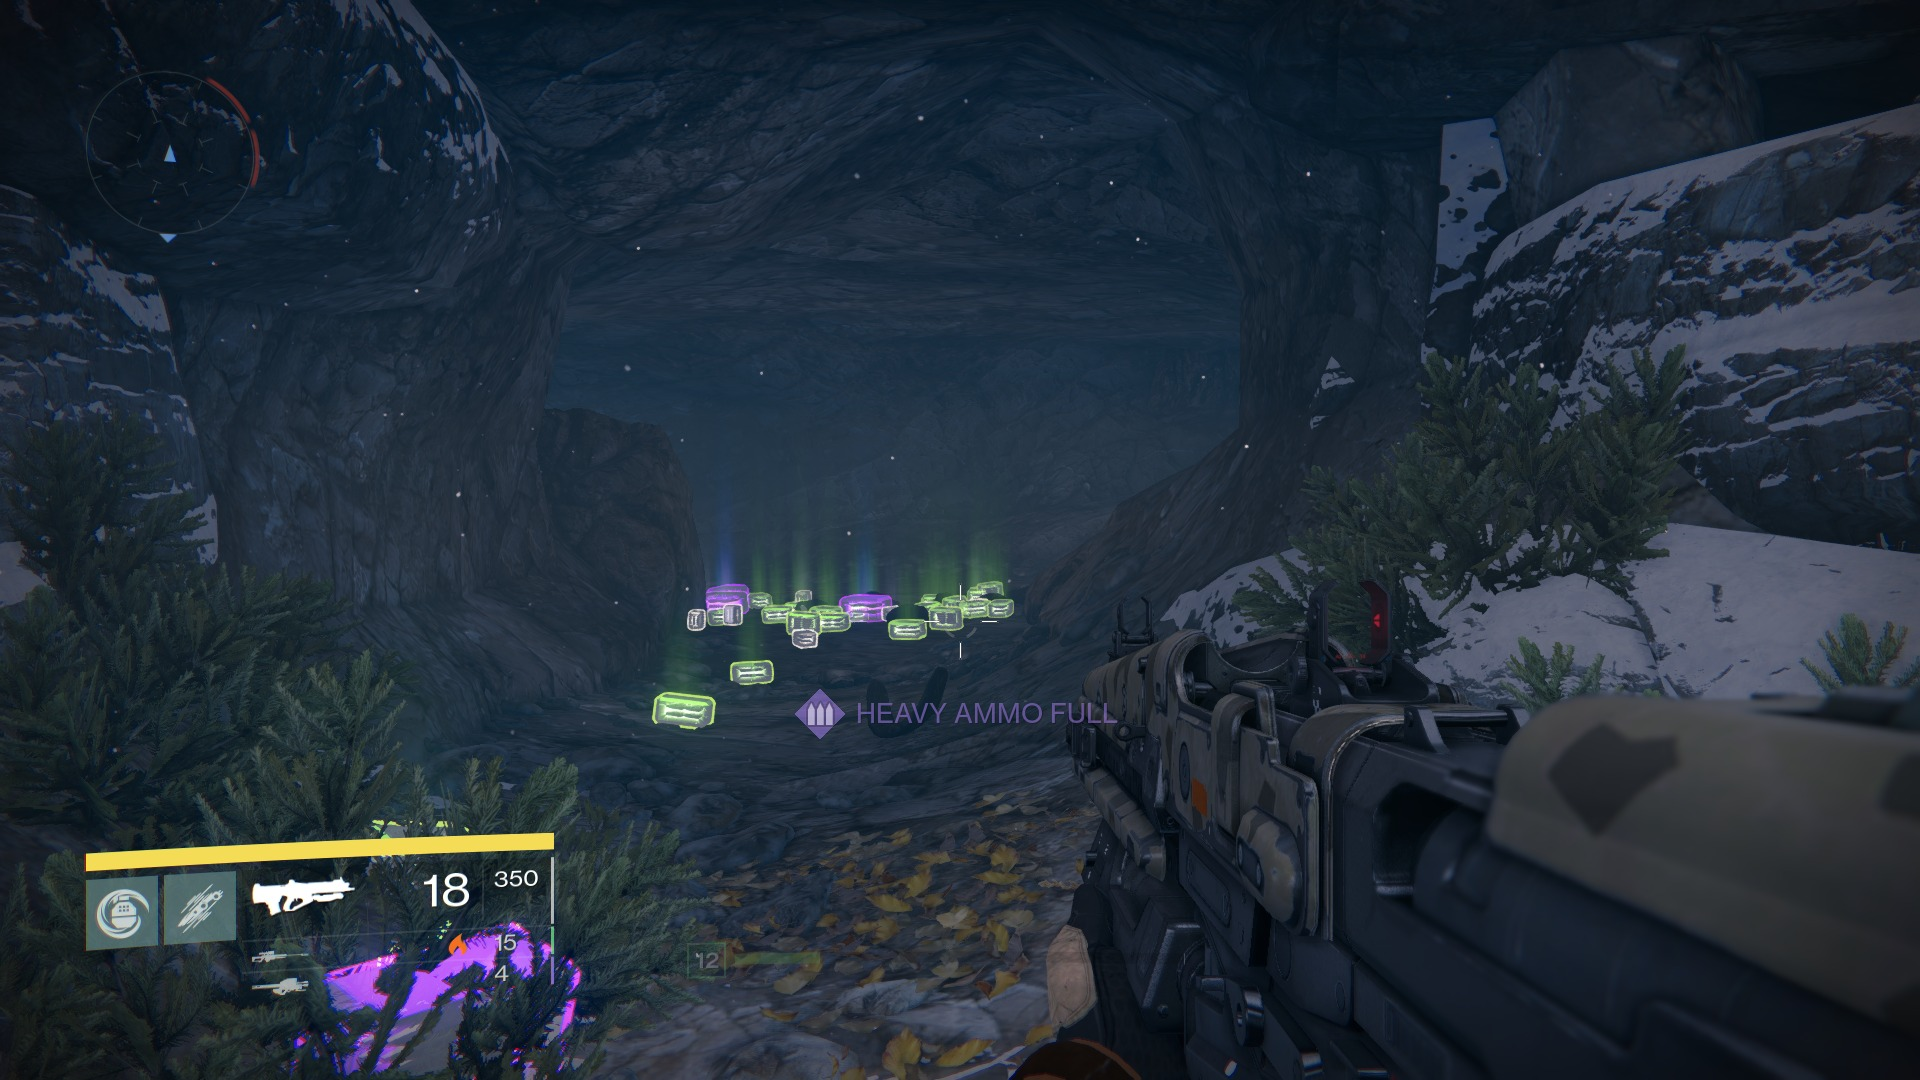 Enemies dropping ammo is rewarding, but for horde mode, it alleviates some of the challenge.